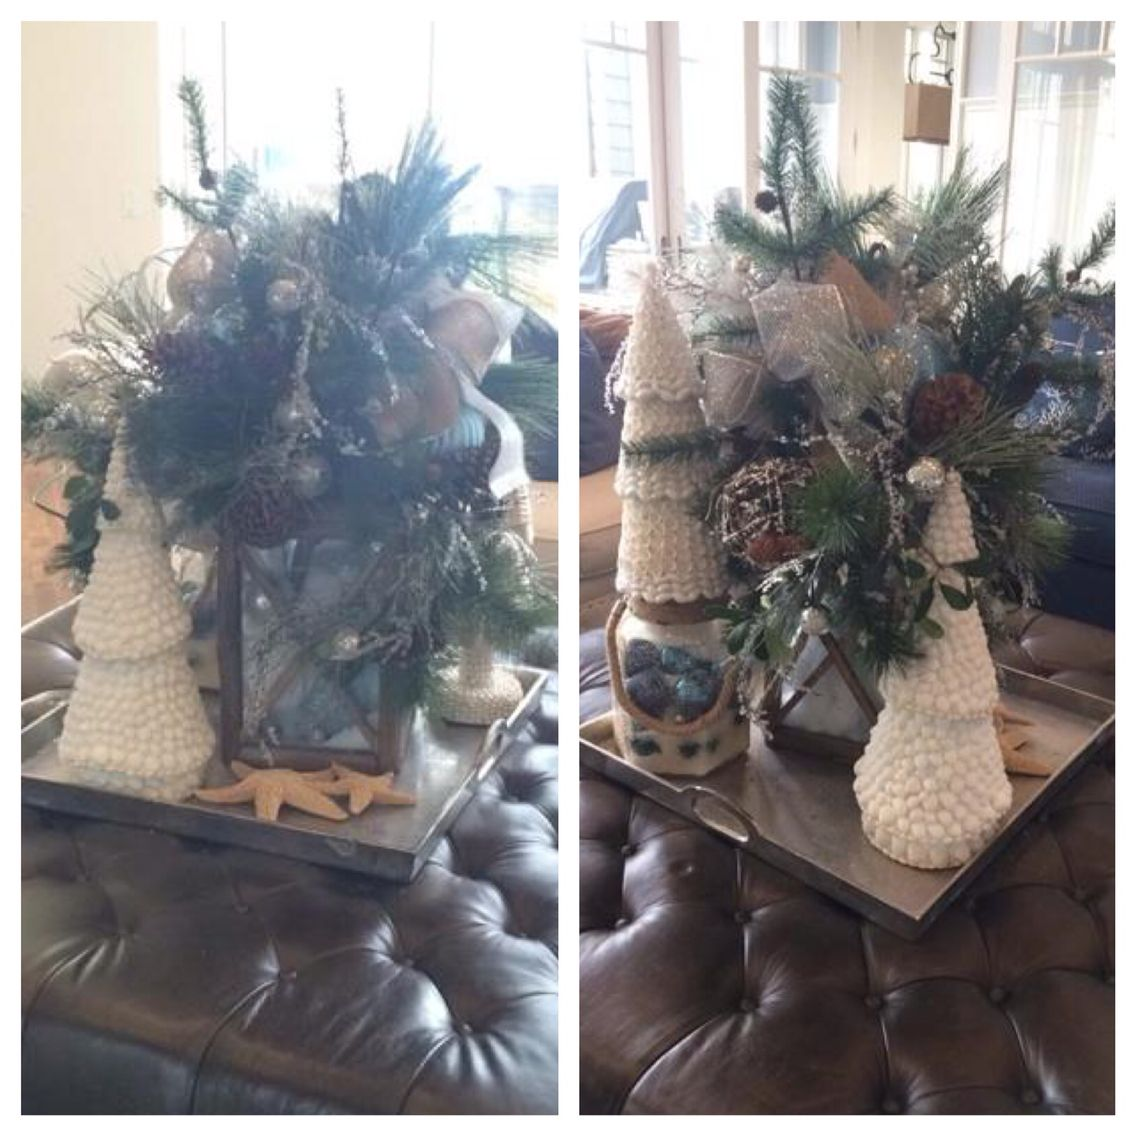 Both sides of centerpiece